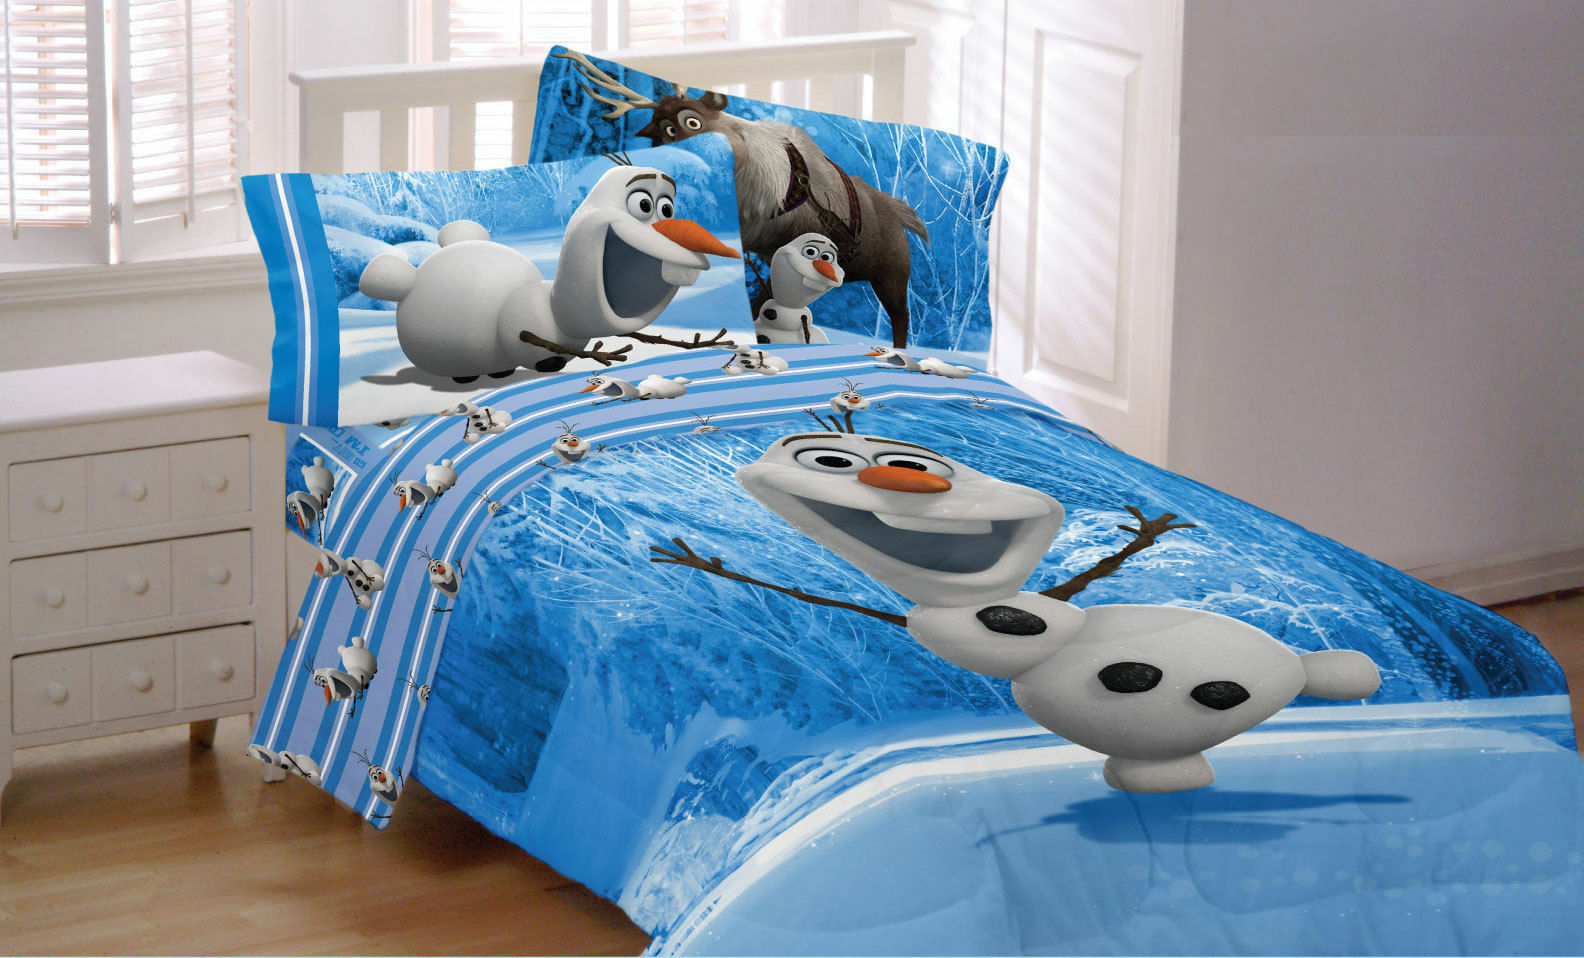 Disney Frozen Dvd Olaf Snowman Comforter Blanket Sheet Set Full Size New 1 Of 1only Available See More